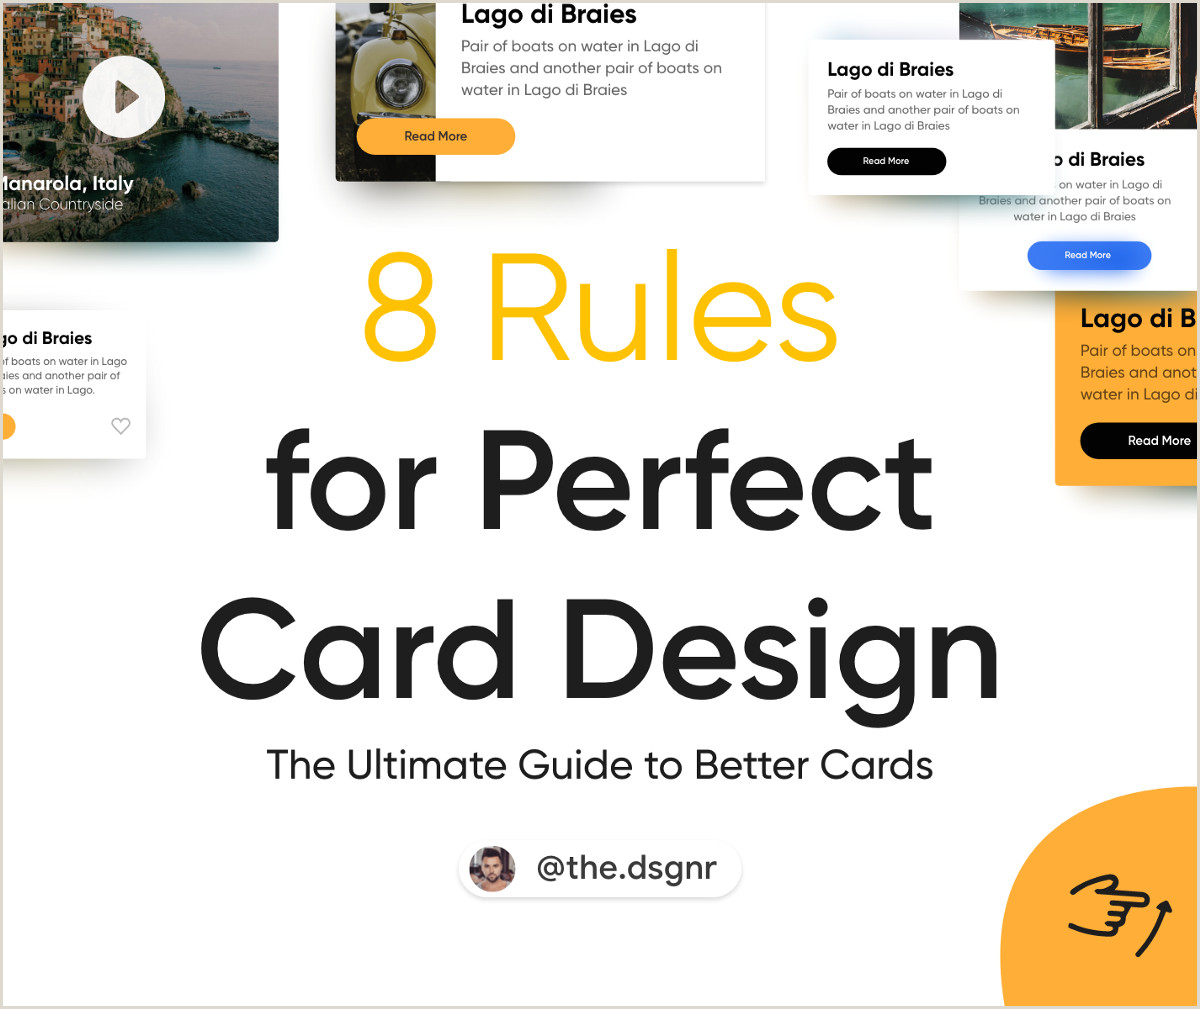 Call Cards Design 8 Rules For A Perfect Card Design By Dorjan Vulaj